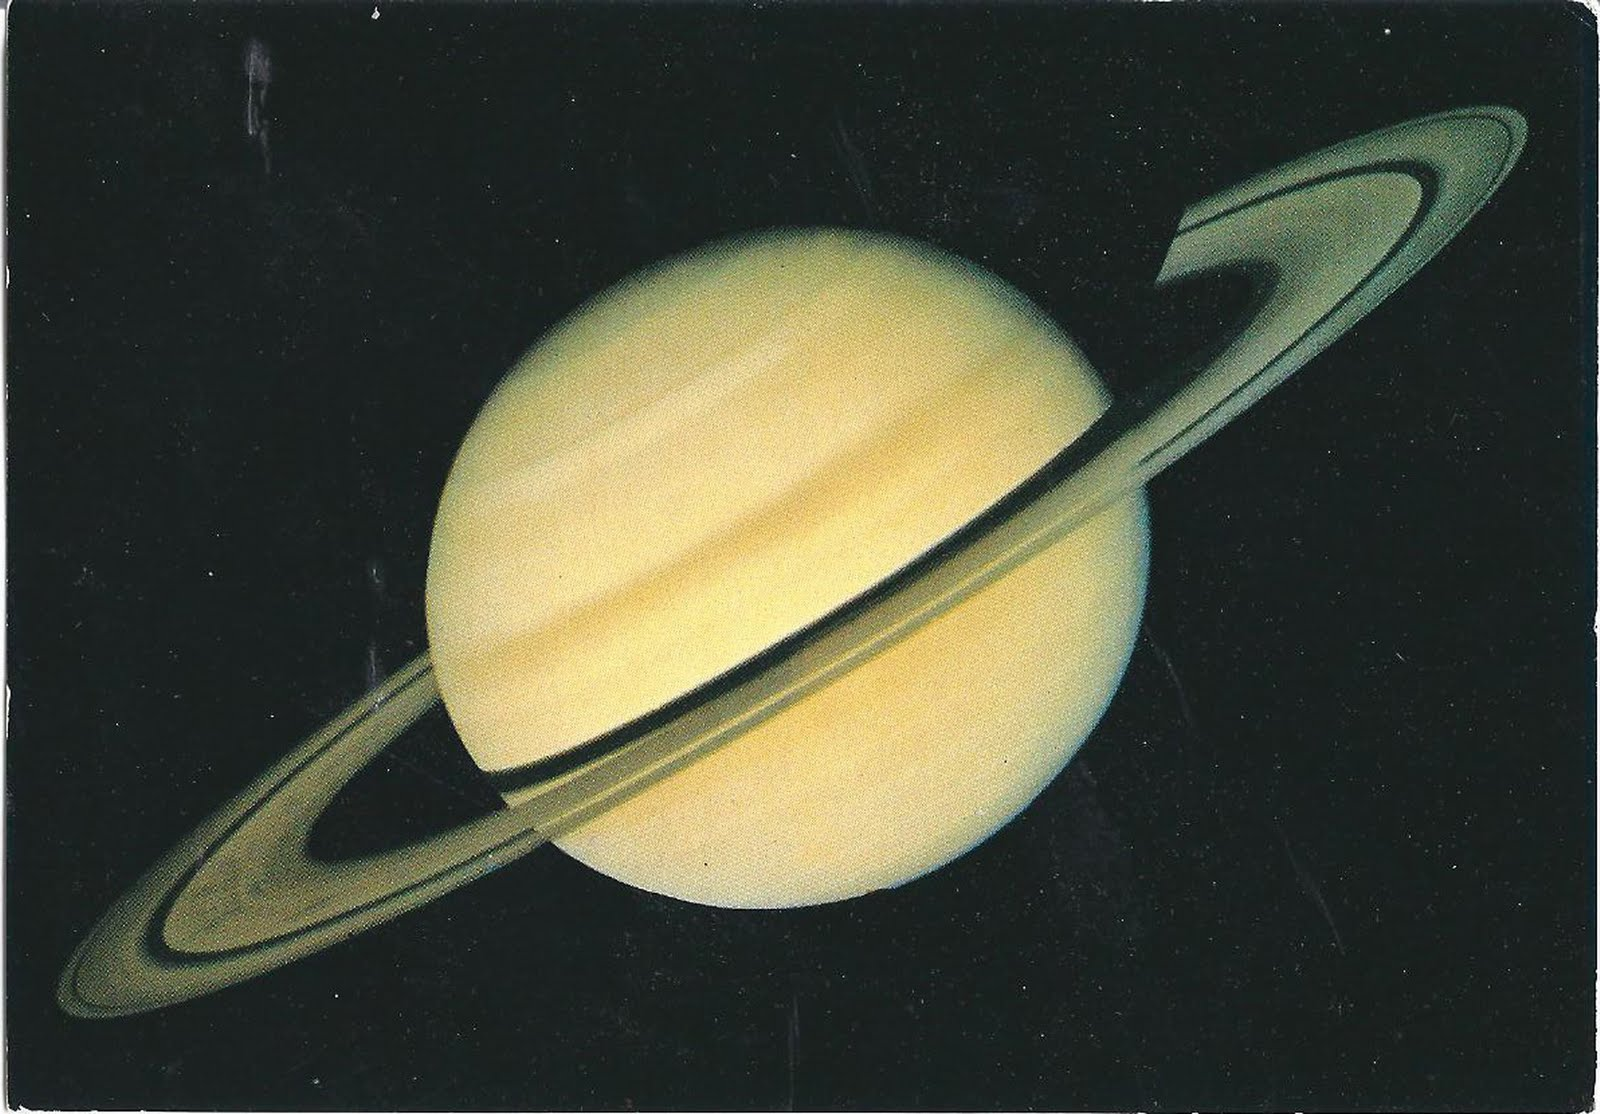 real planet saturn - photo #43